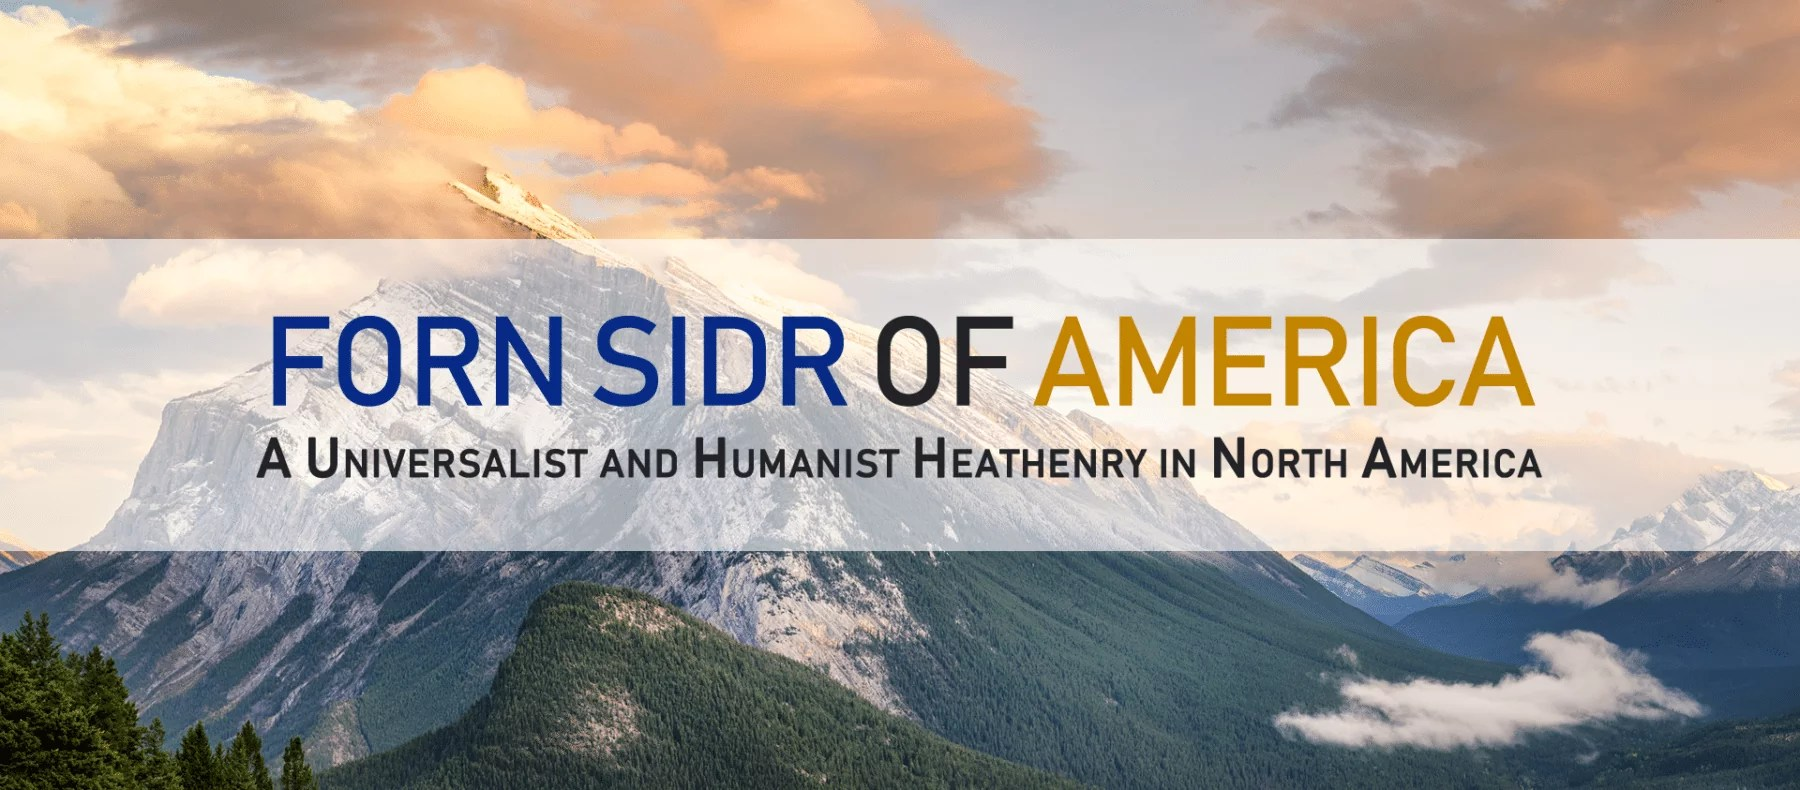 Forn sidr of America:  Universalist and Humanist Norse heathenry